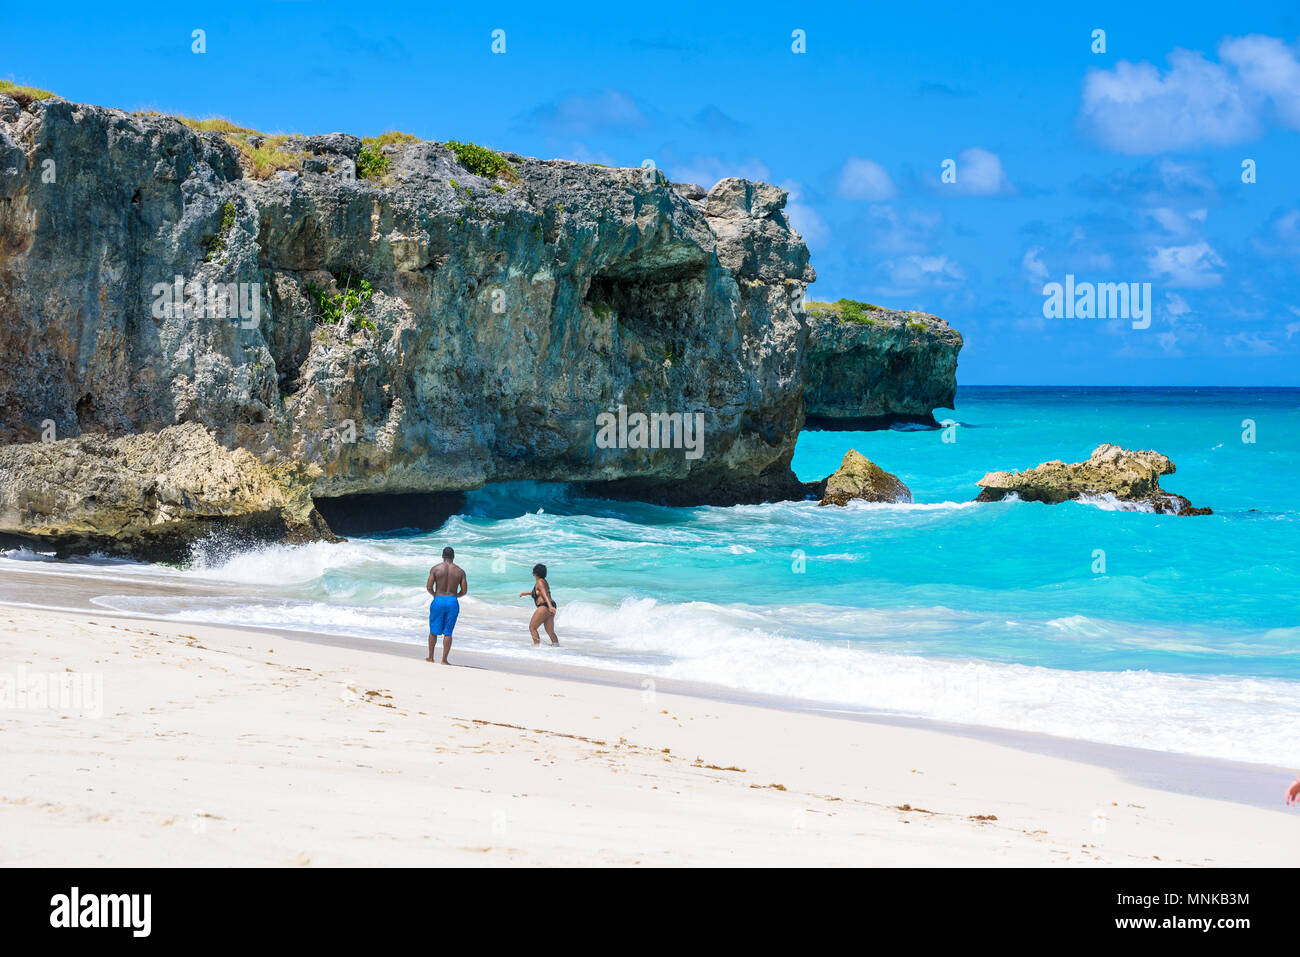 Explore The Beauty Of Caribbean: Bottom Bay Beach Barbados Stock Photos & Bottom Bay Beach